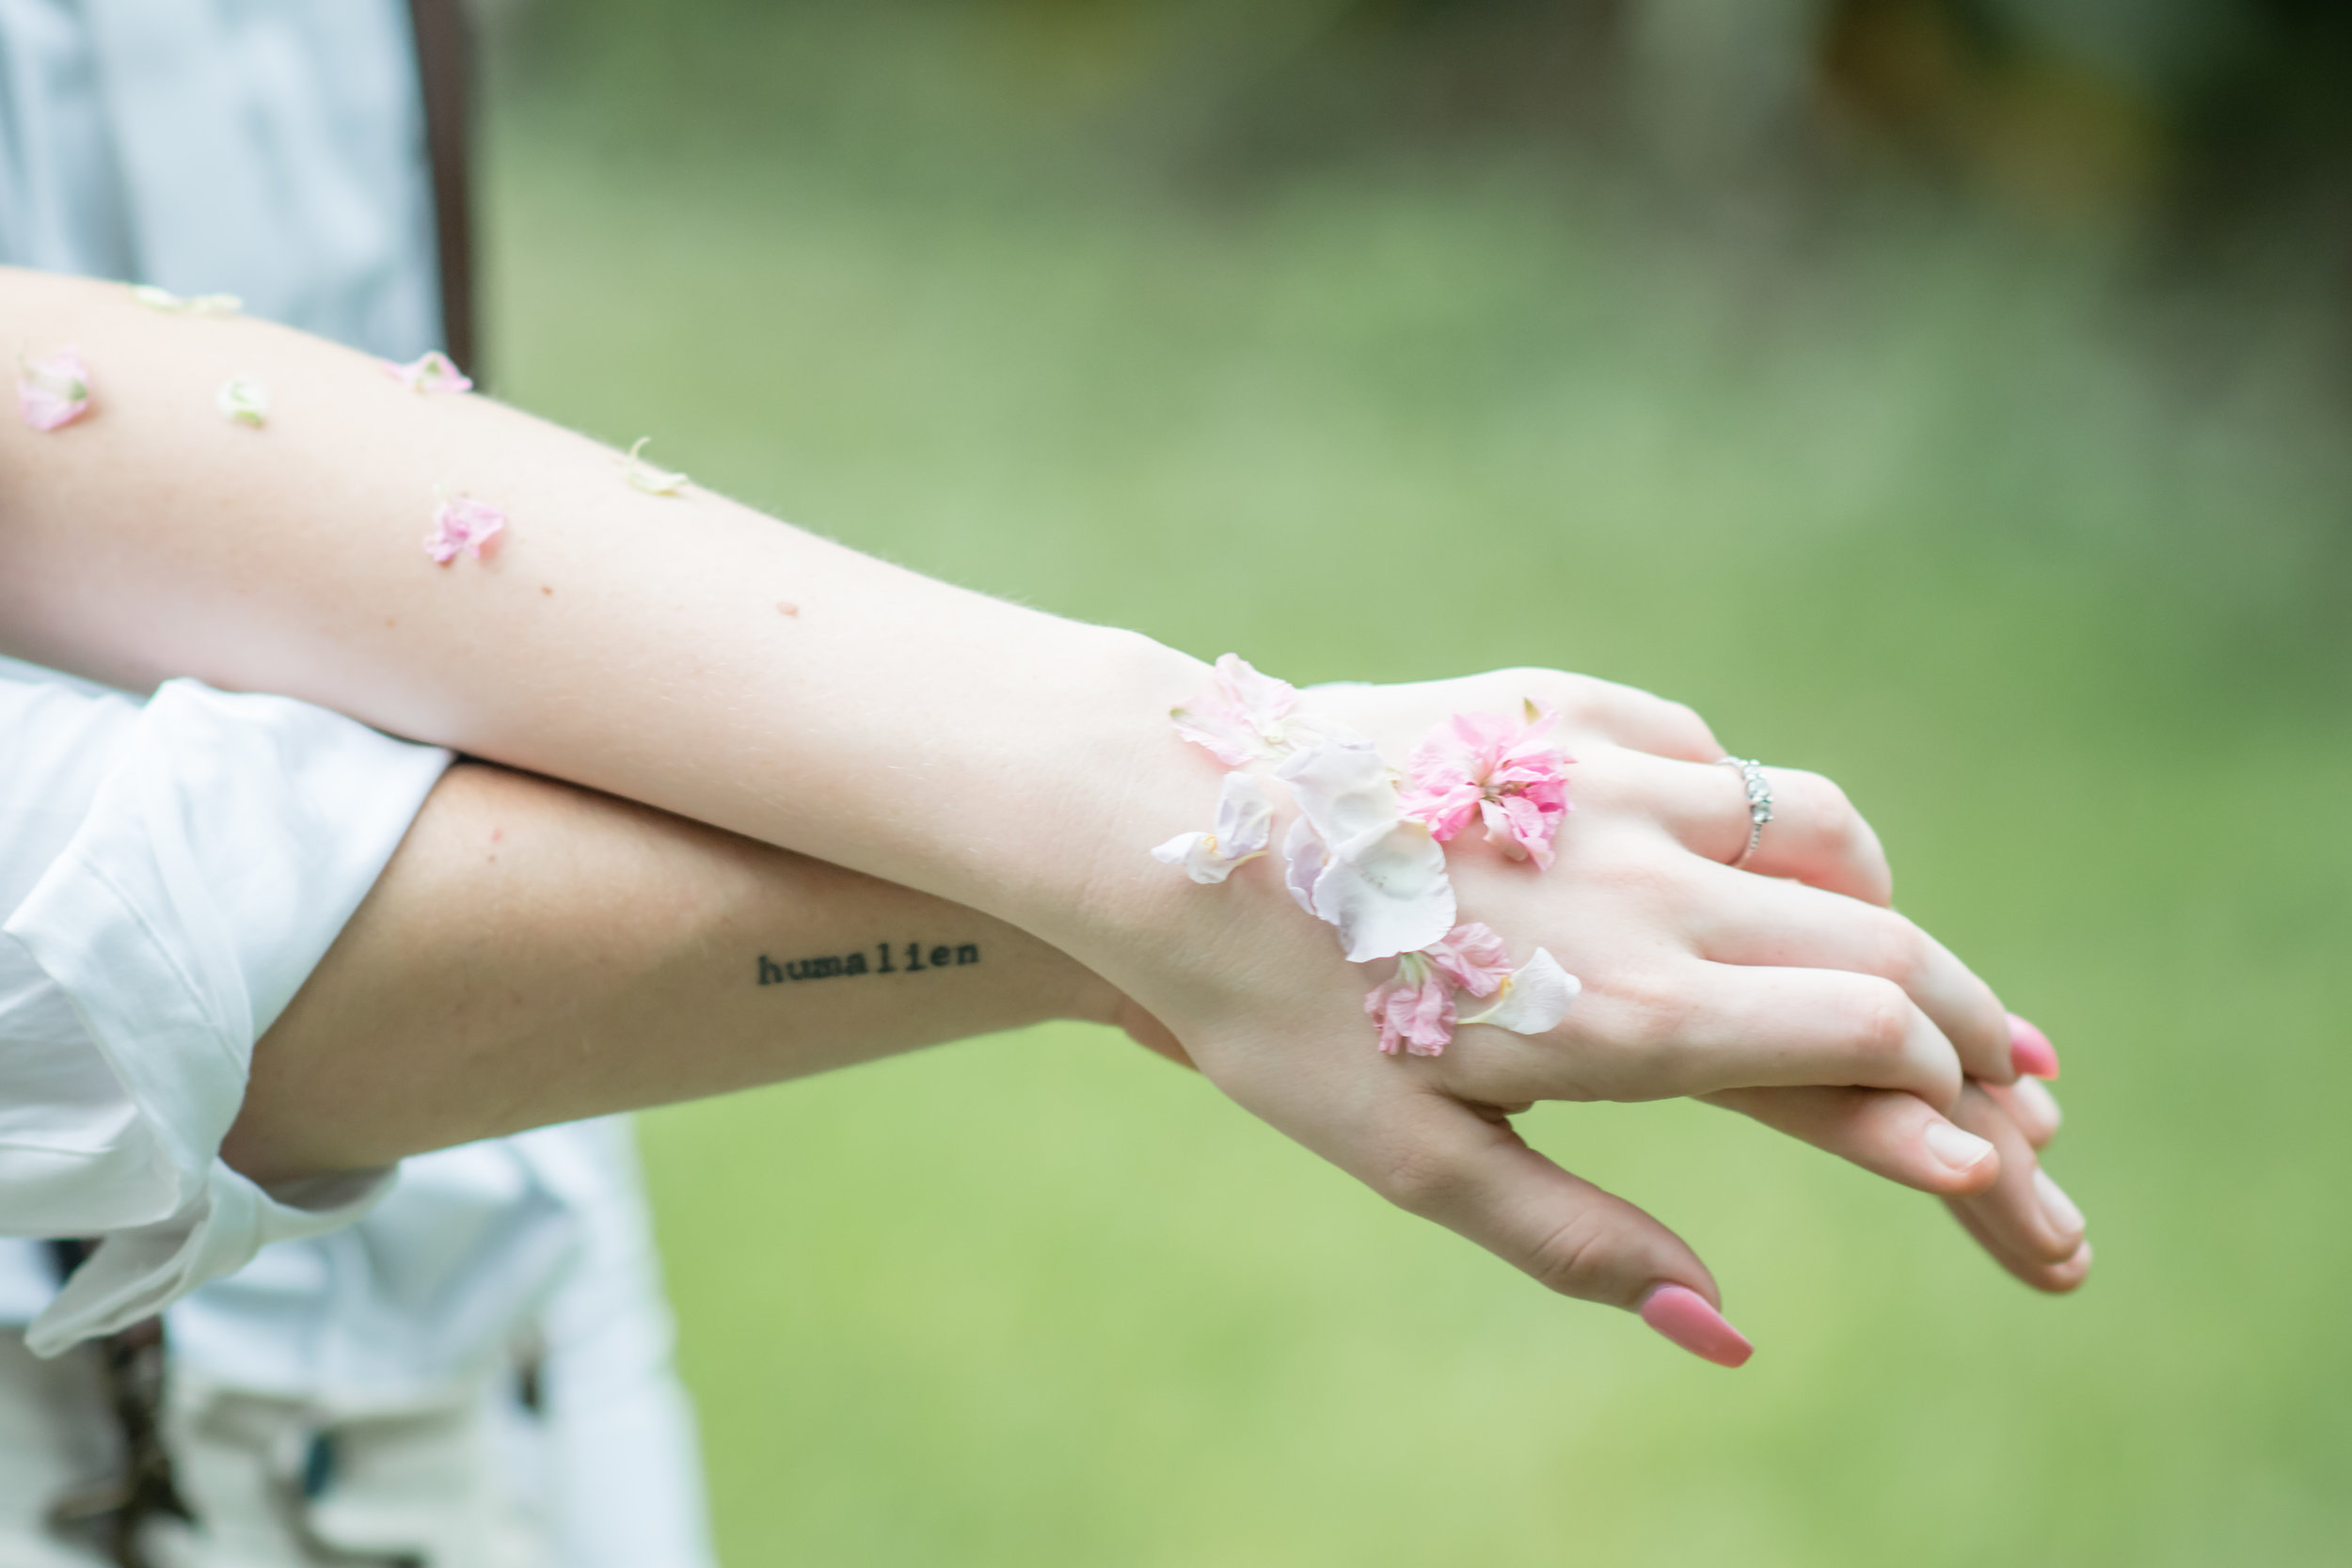 close up images of bride and groom with florals on skin